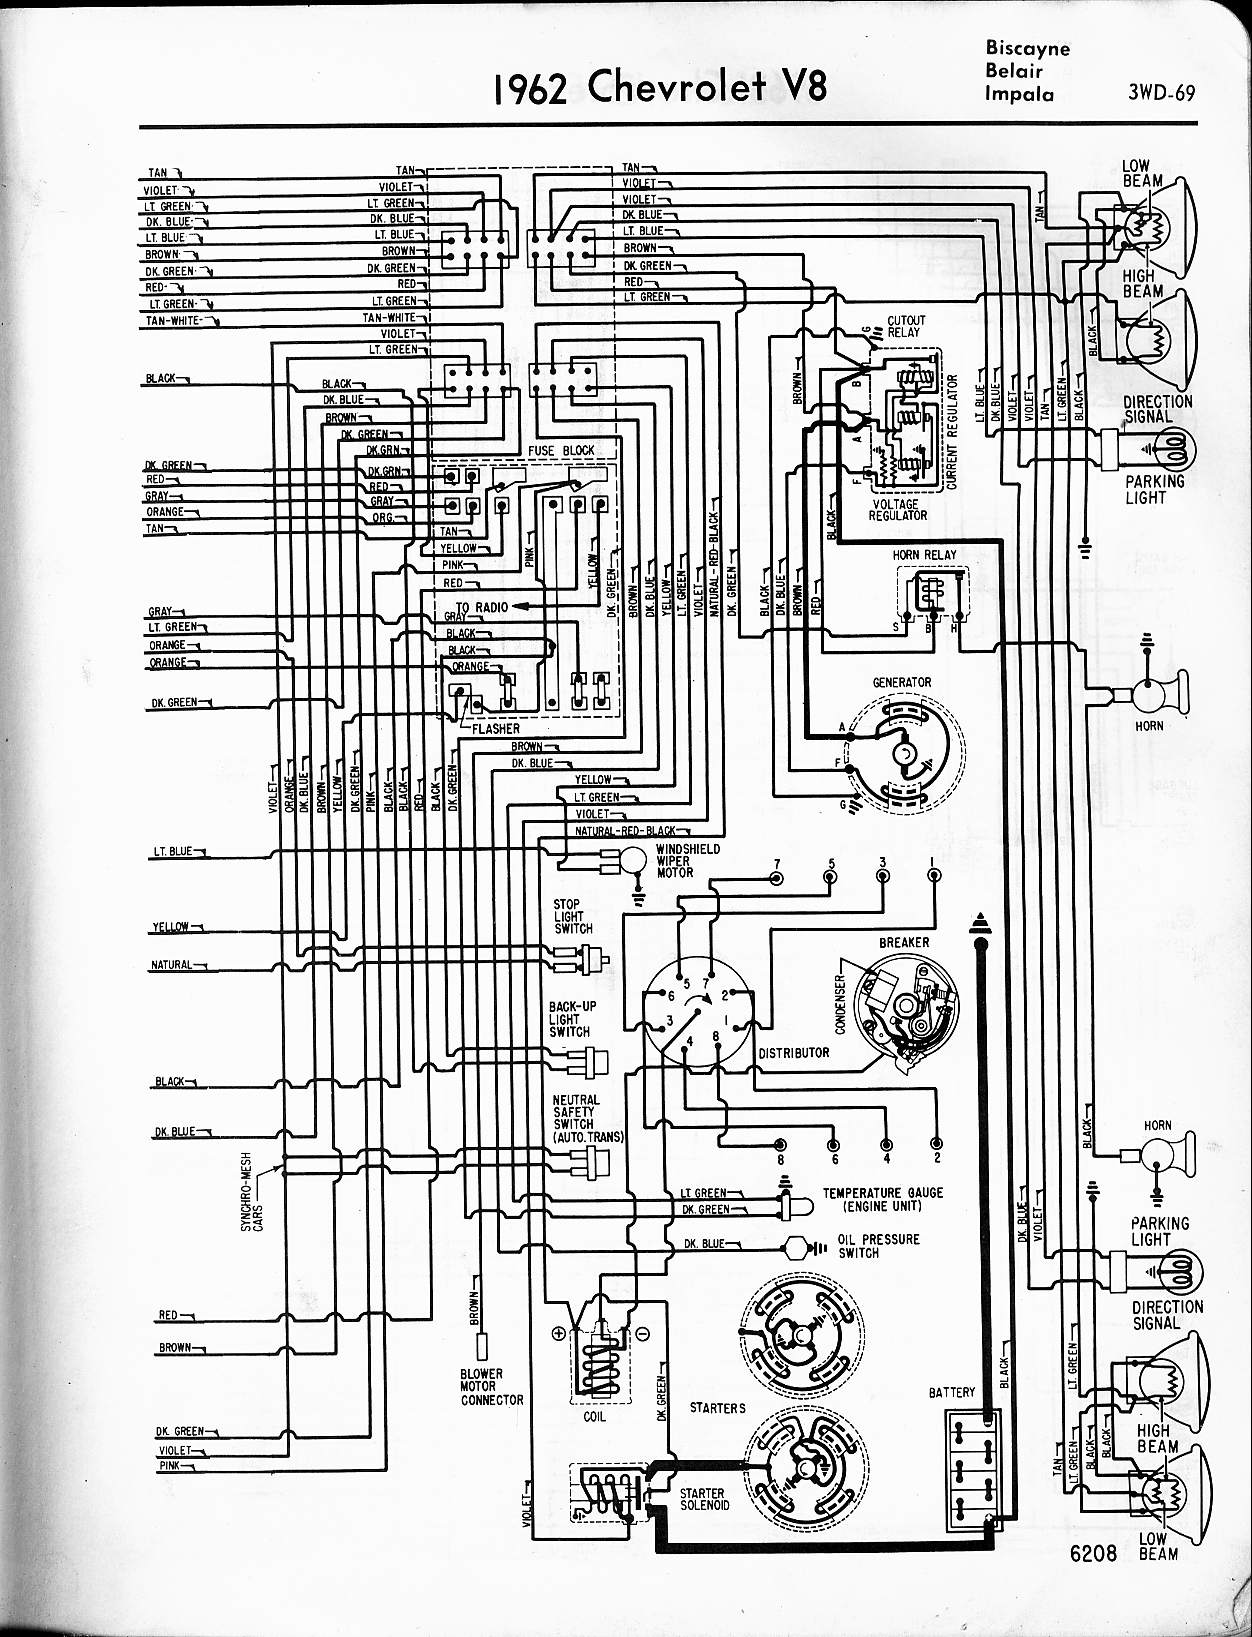 MWireChev62_3WD 069 1962 chevrolet wiring diagram manual chevytalk free 1964 corvair wiring diagram at love-stories.co